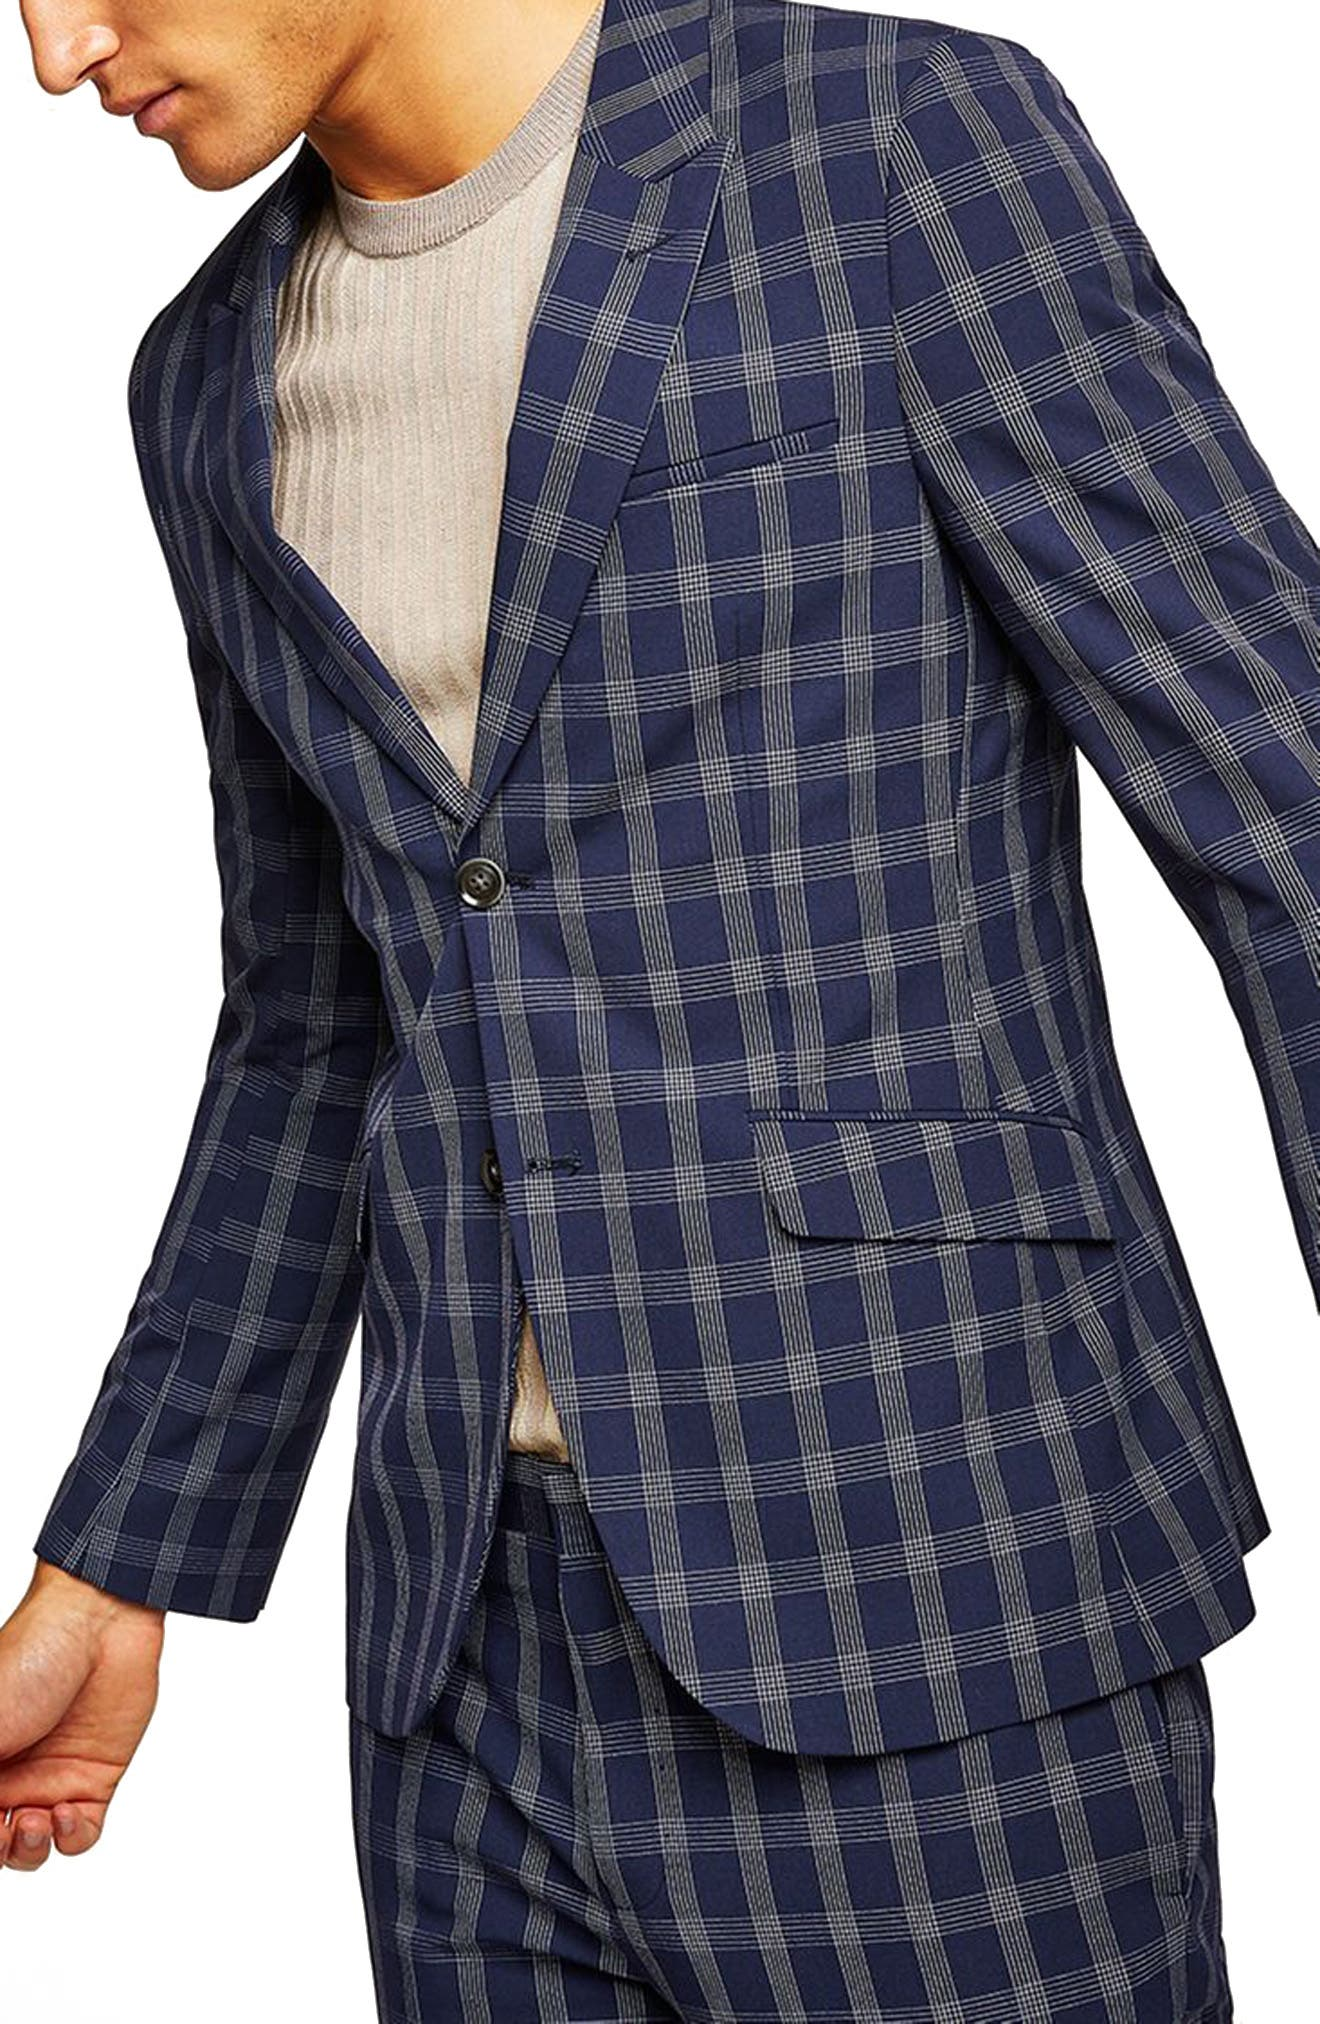 TOPMAN Muscle Fit Check Suit Jacket in Navy Blue Multi